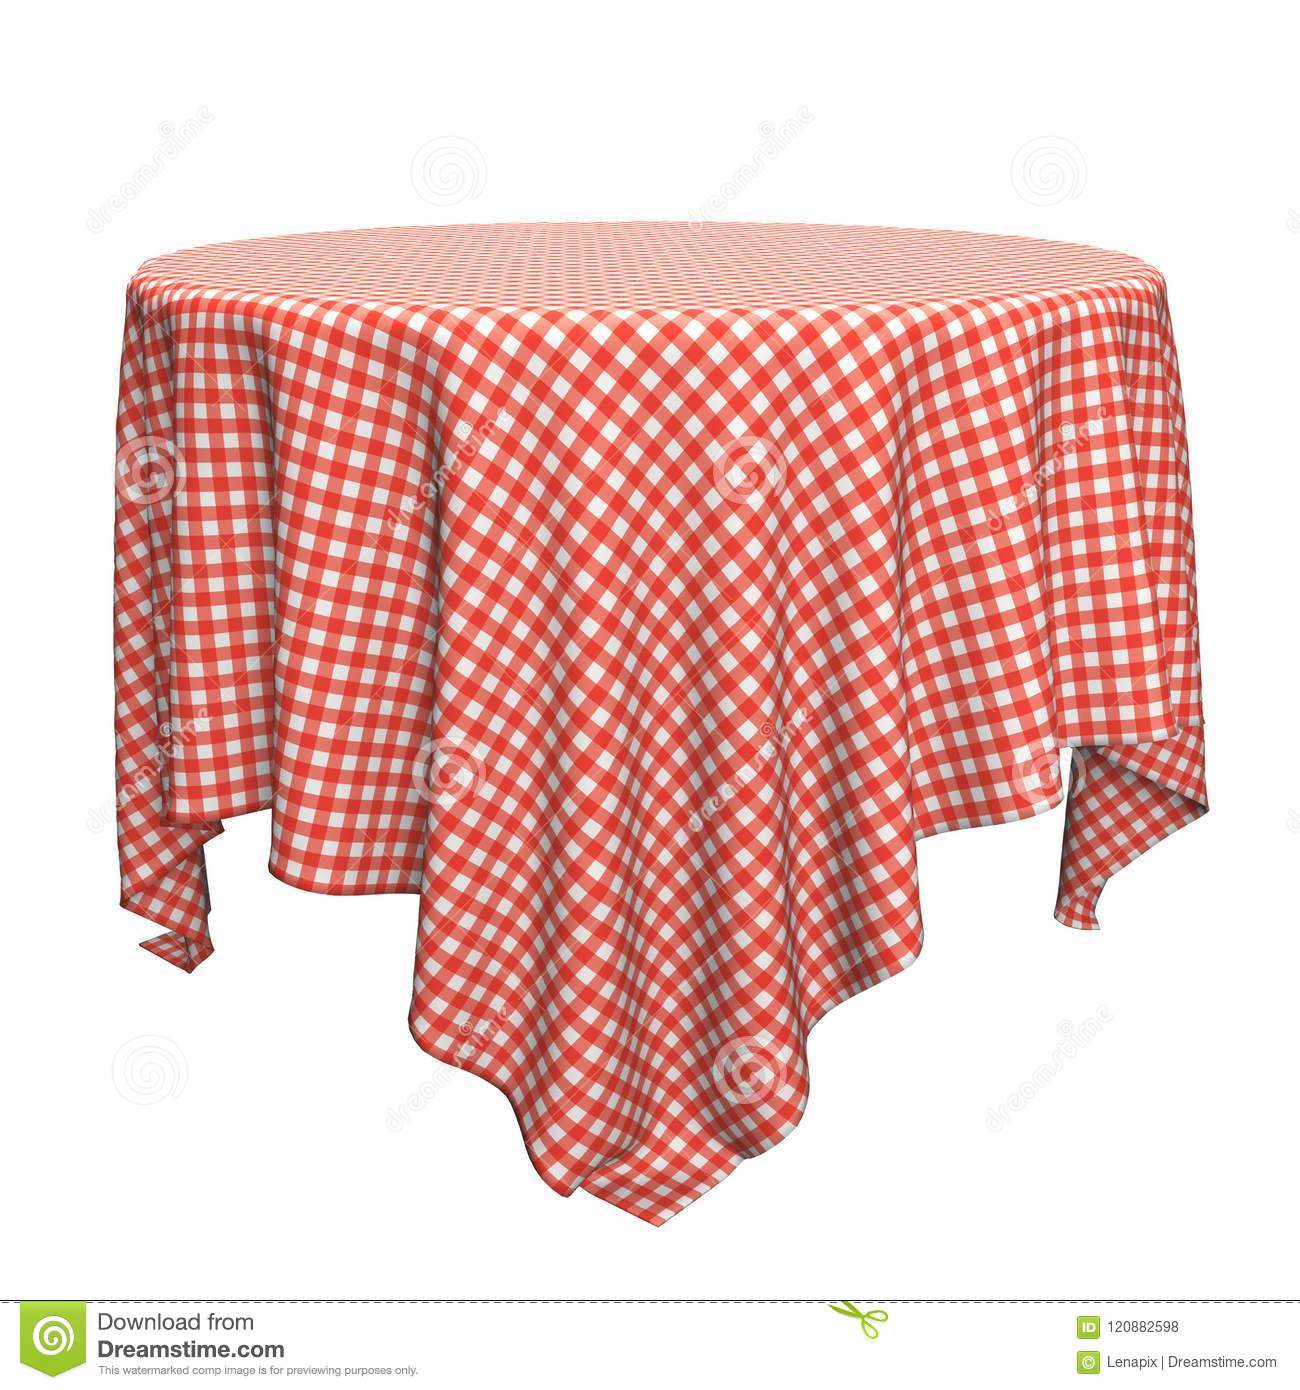 Nappe Ronde Blanche Et Rouge Illustration Stock Illustration Du